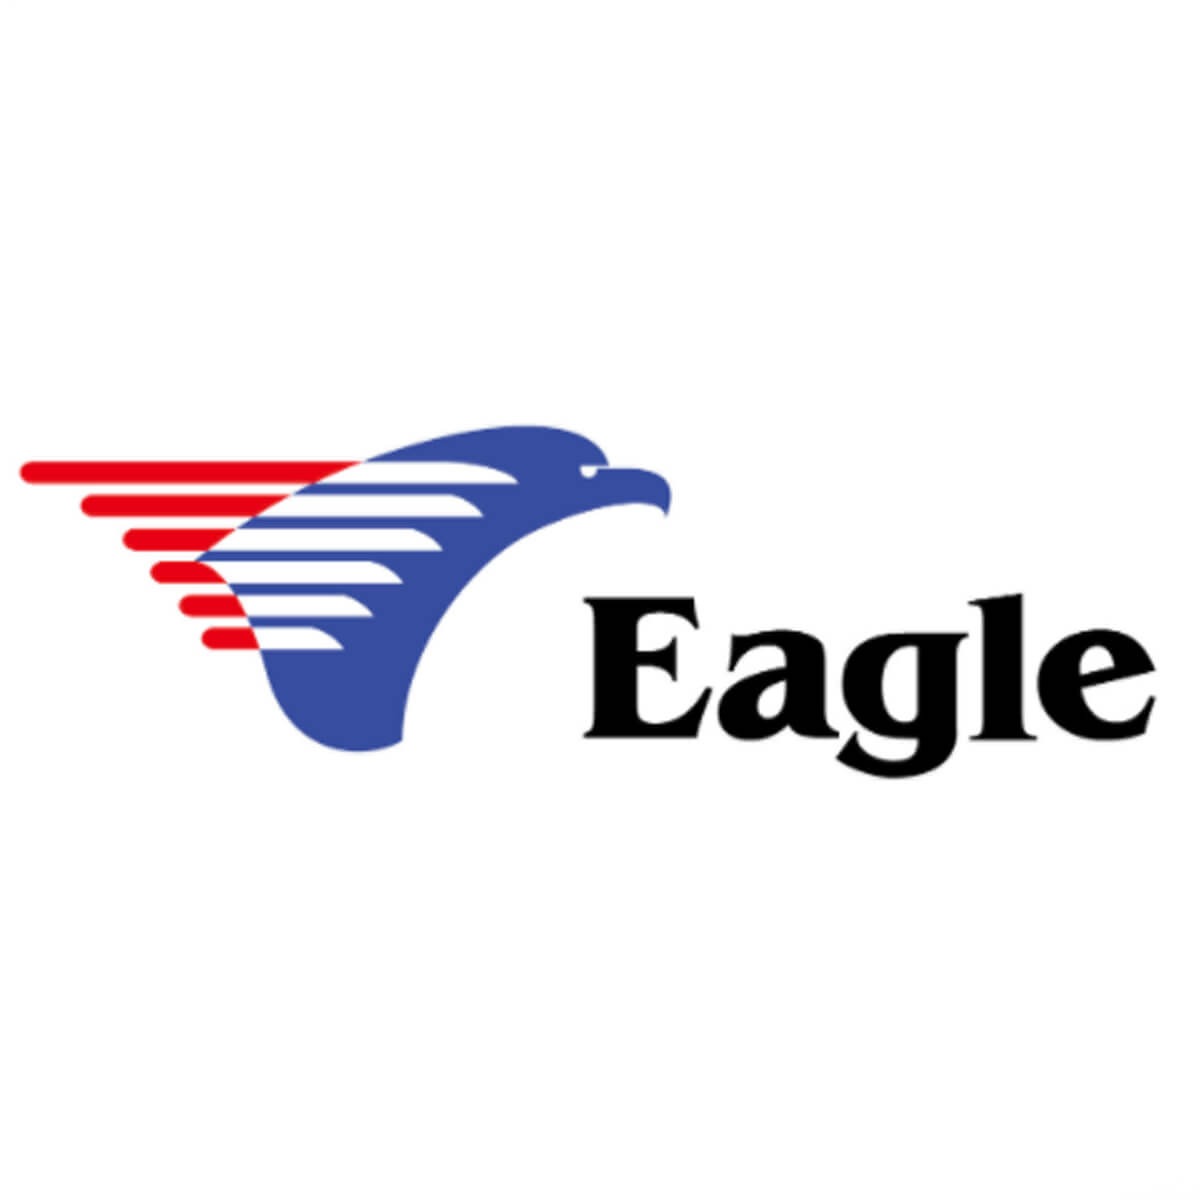 eagle-yeast-logo